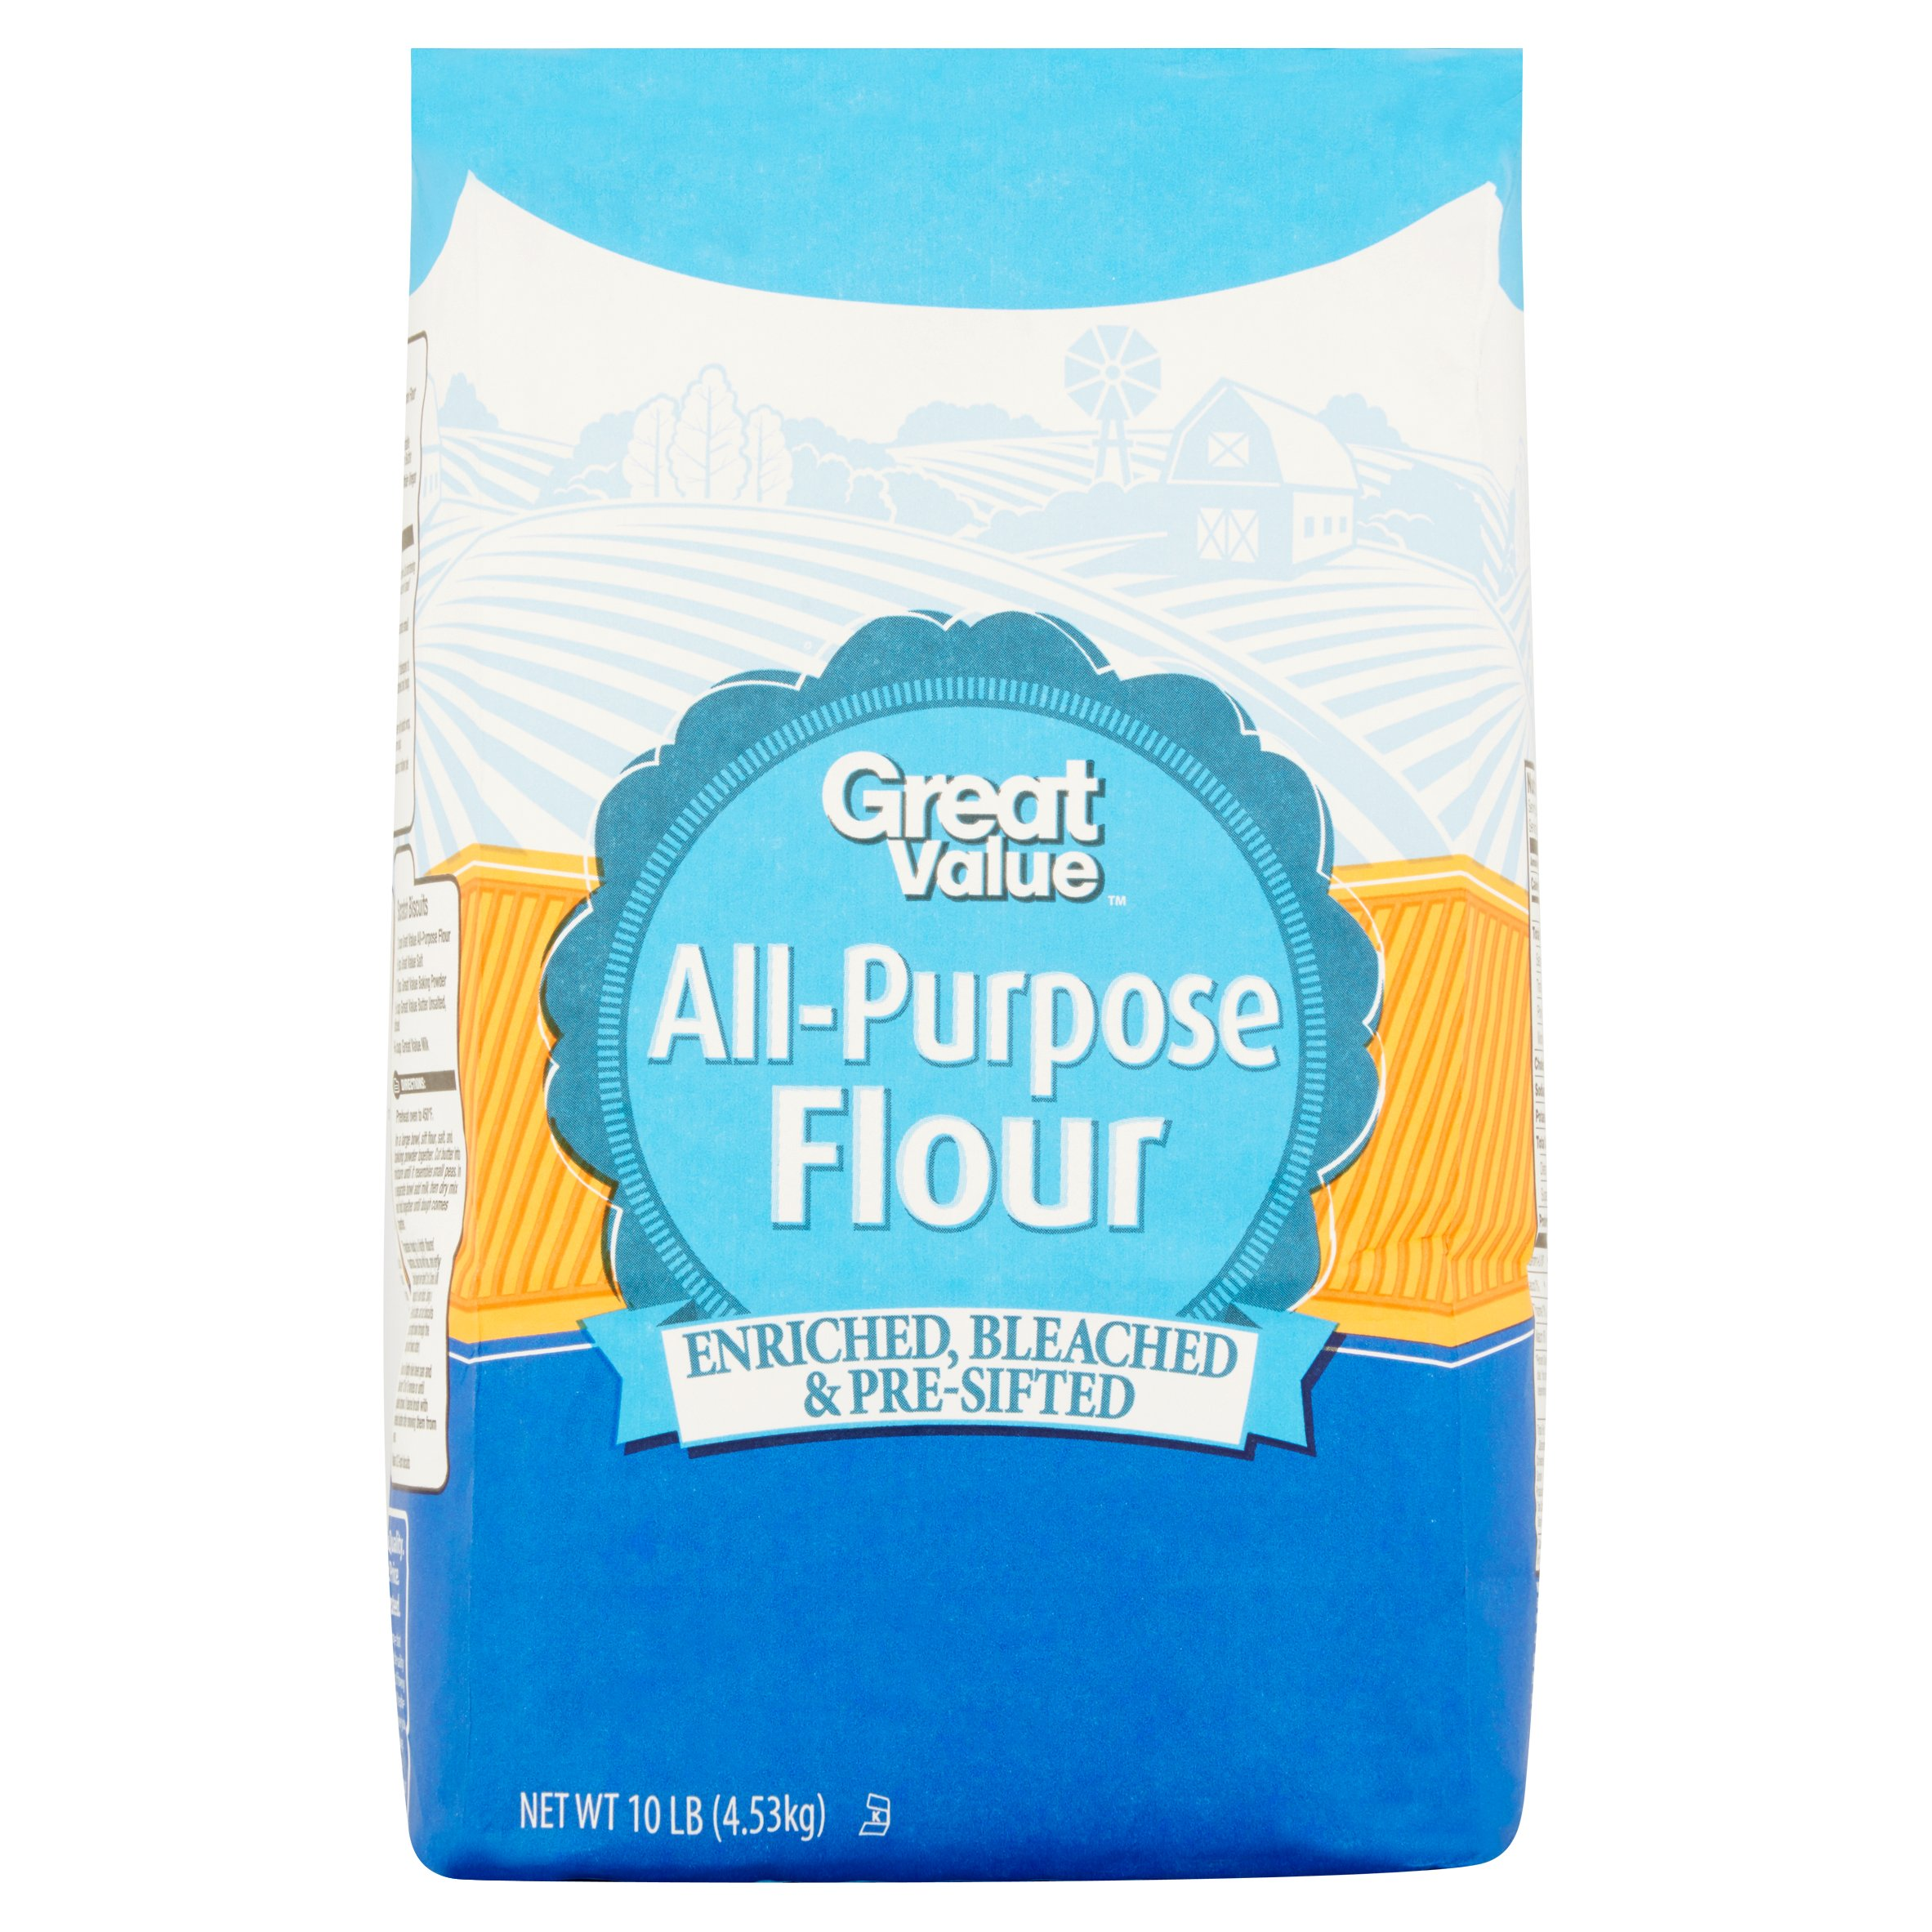 Great Value All-Purpose Flour, 10 lb